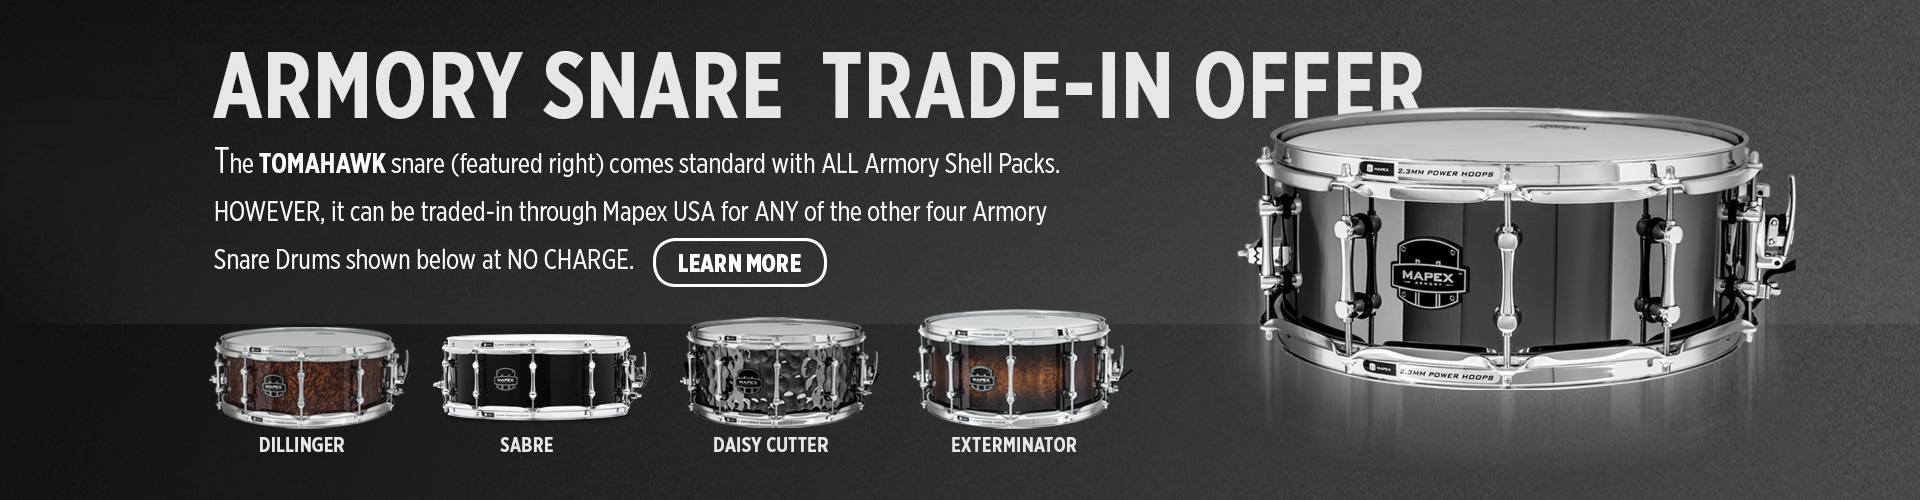 Armory Snare Trade In Offer